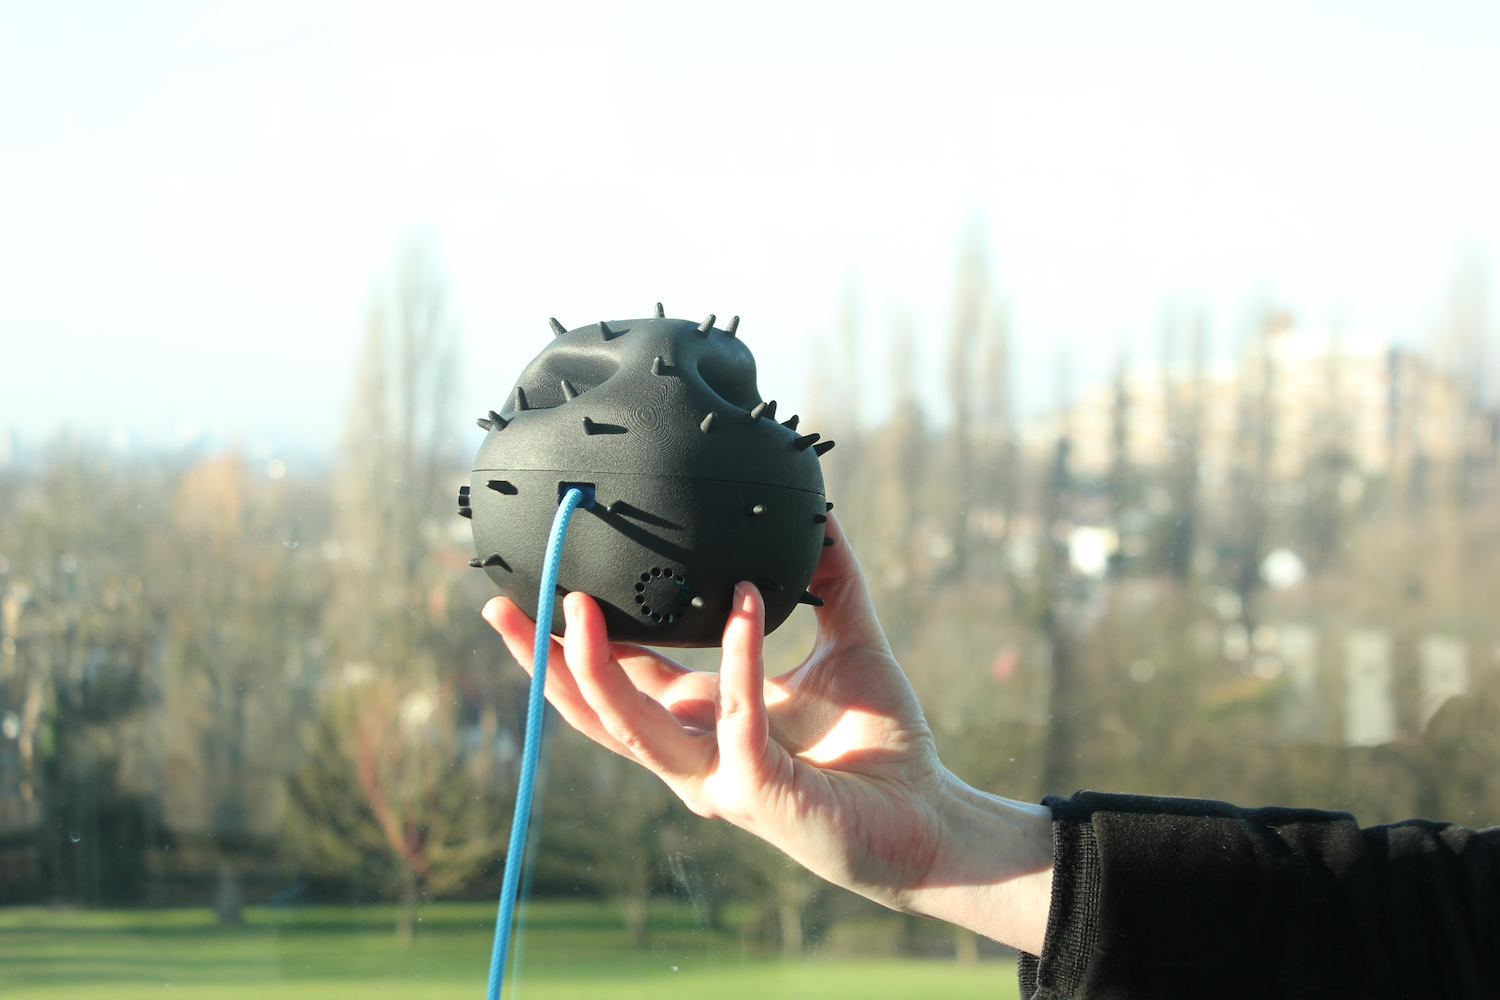 A pollen Dustbox 2.0 held up by a hand overlooking London from the Horniman museum